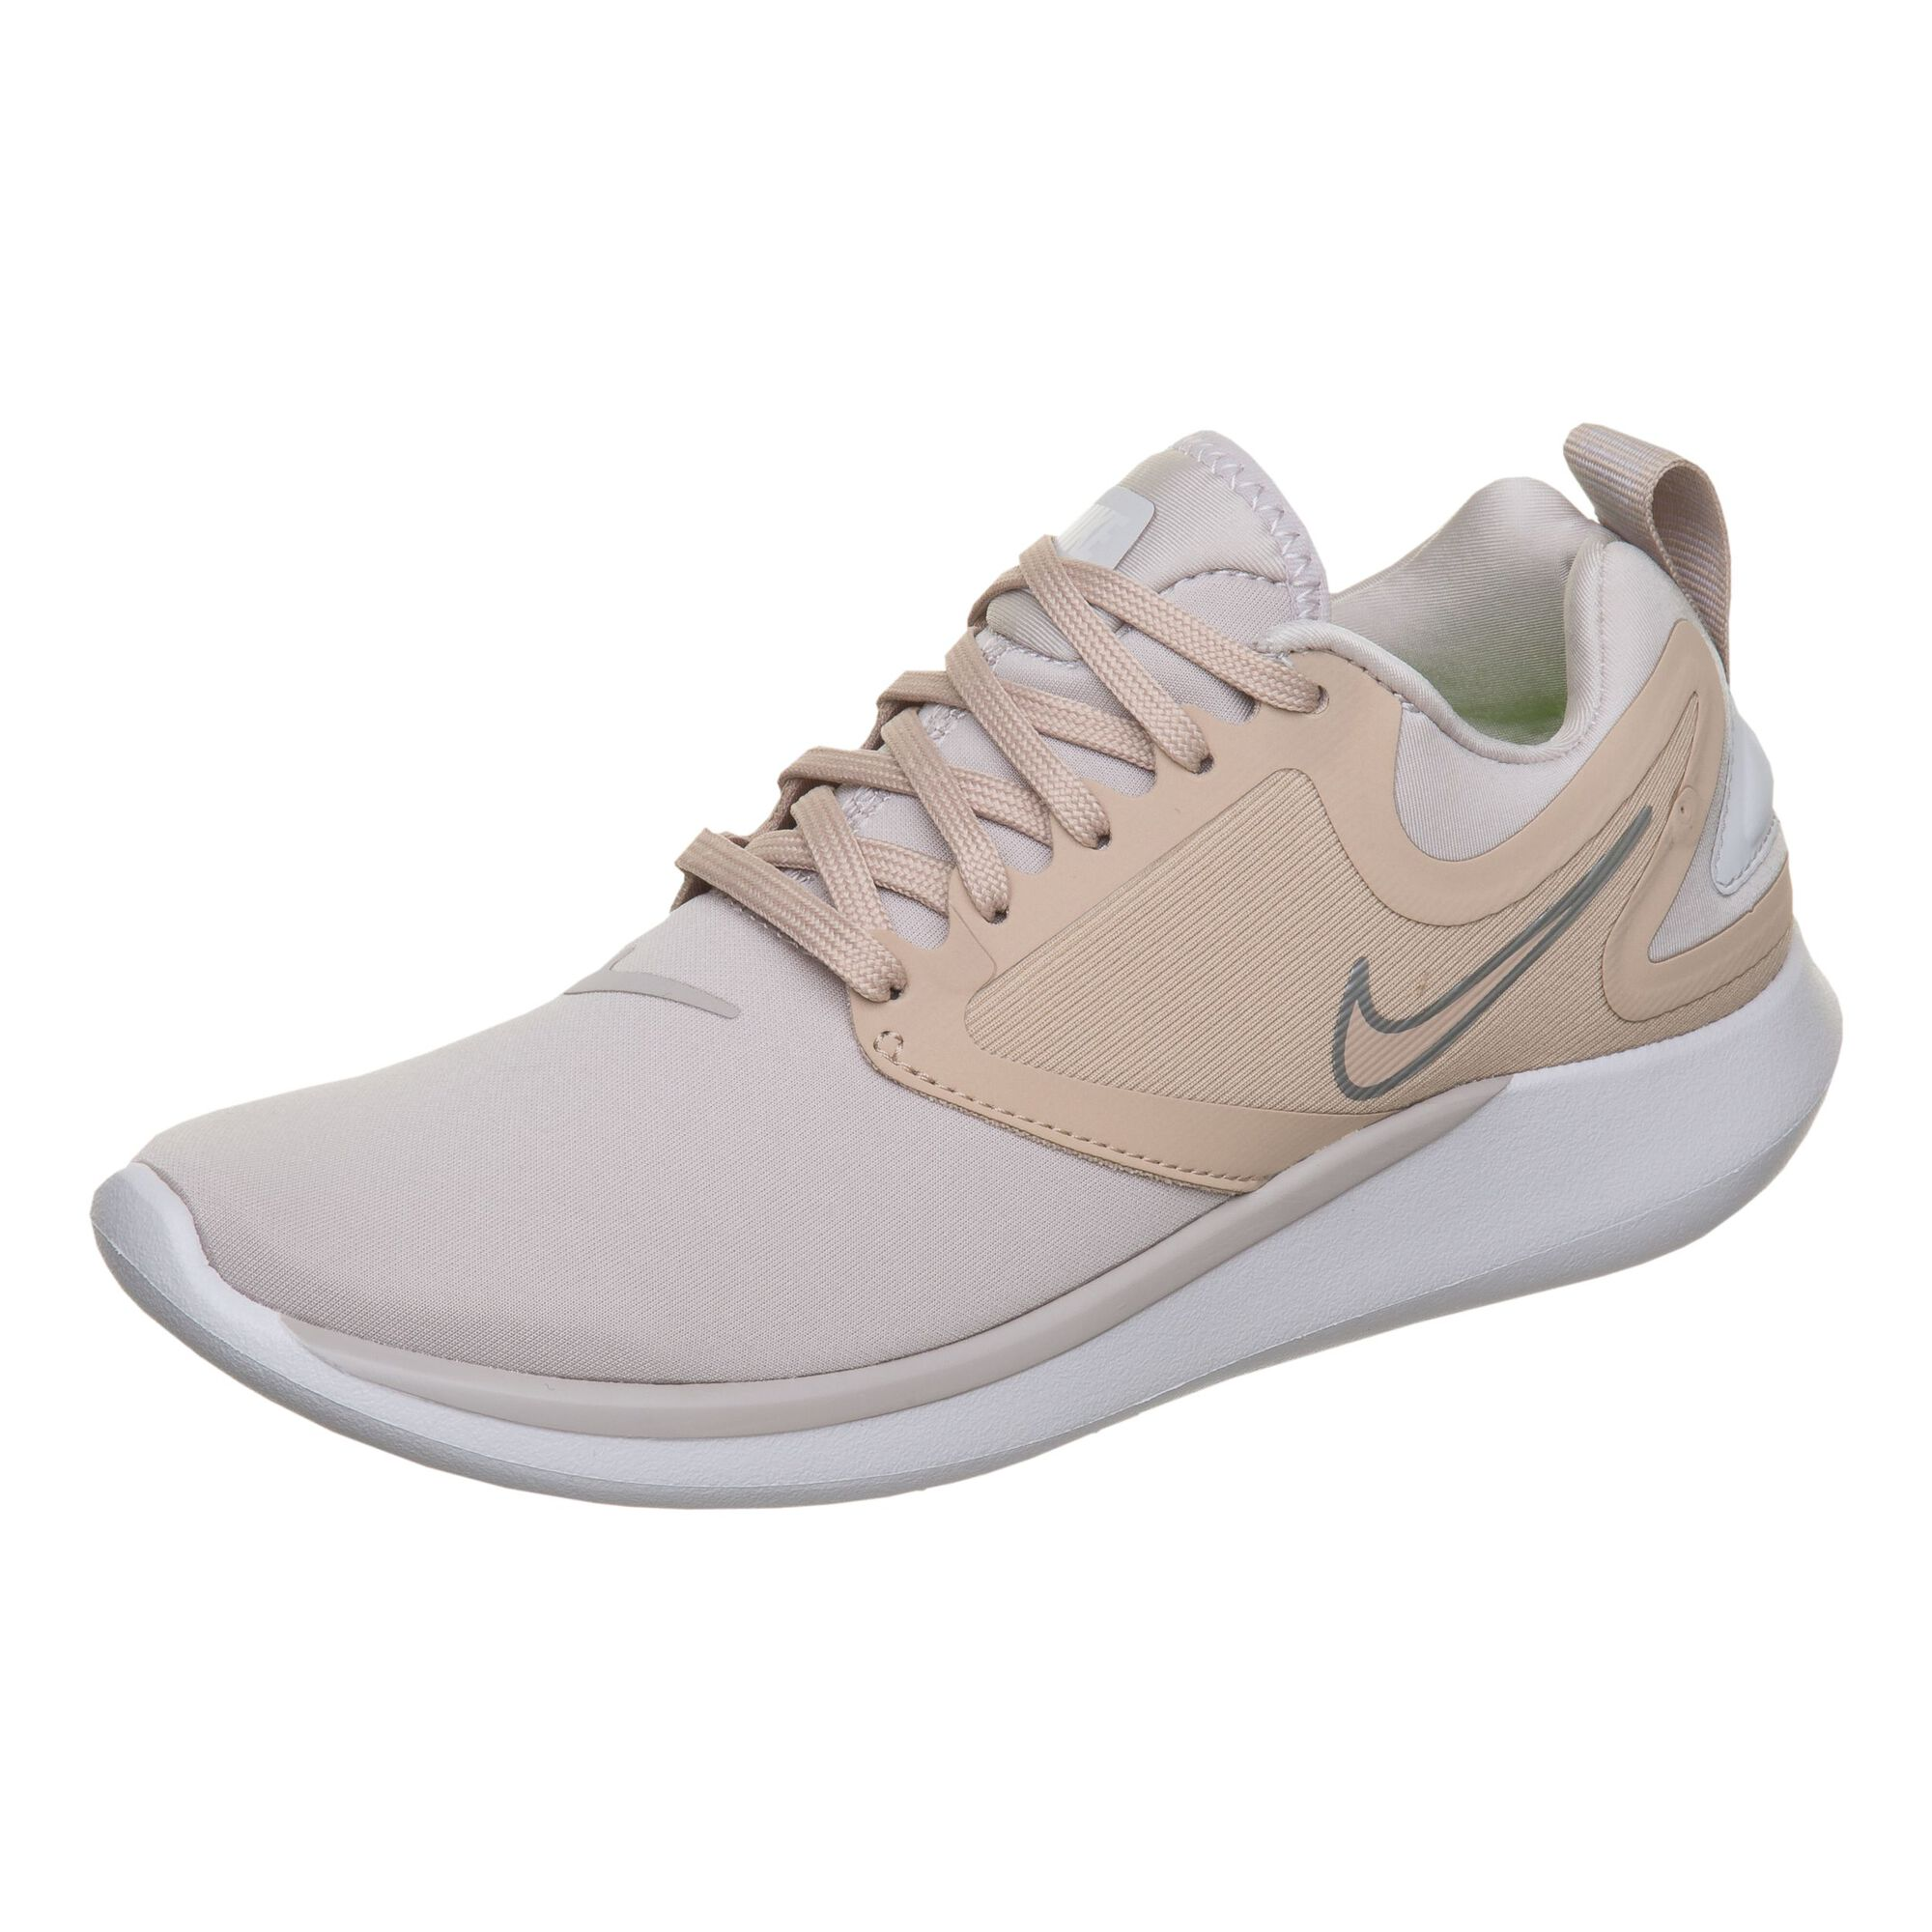 b076edccd0f5 buy Nike LunarSolo Neutral Running Shoe Women - Beige